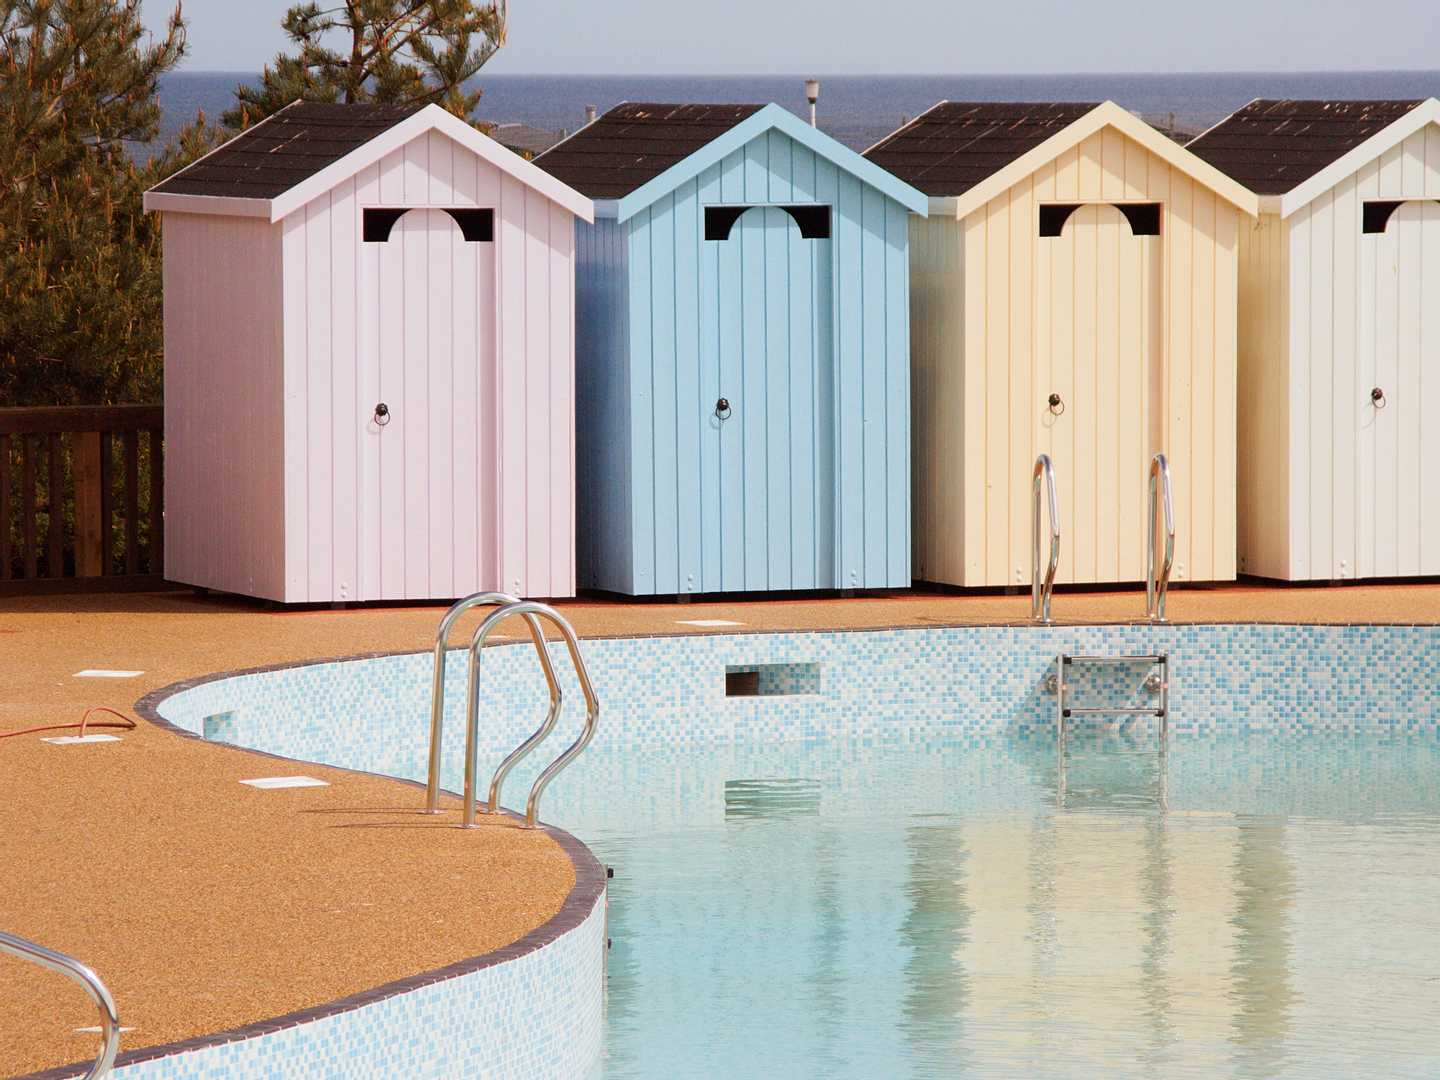 Four pastel coloured beach hut changing rooms standing by the outdoor pool on a bright, sunny day